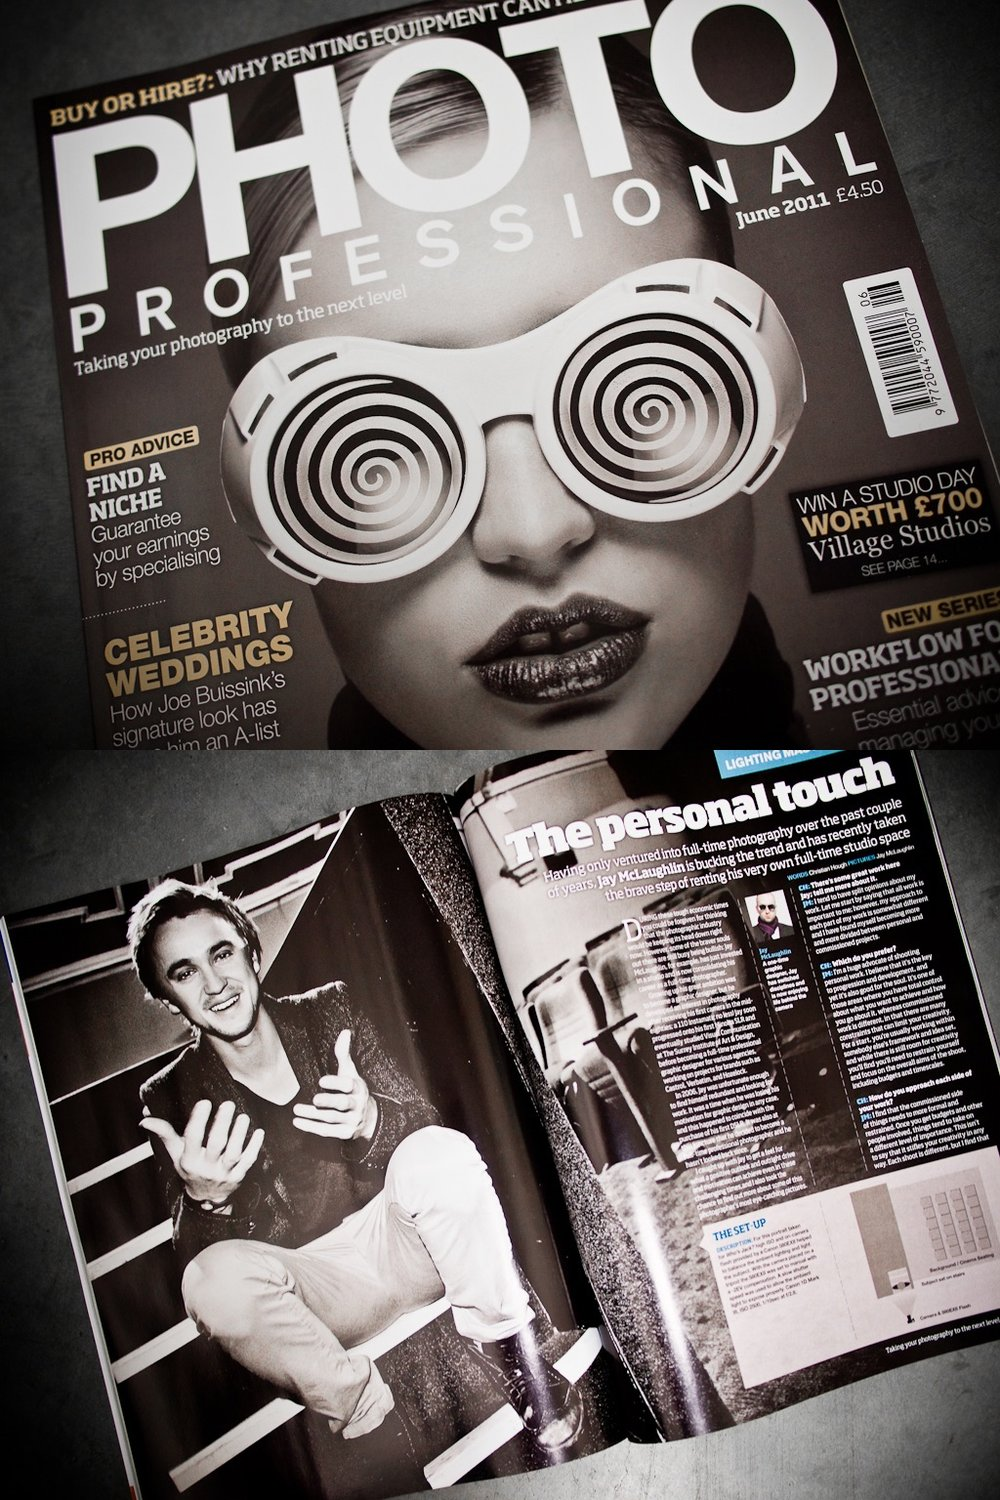 Photo Professional Magazine June 2011 Cover Jay McLaughlin Feature Article Interview Tom Felton Draco Malfoy Harry Potter